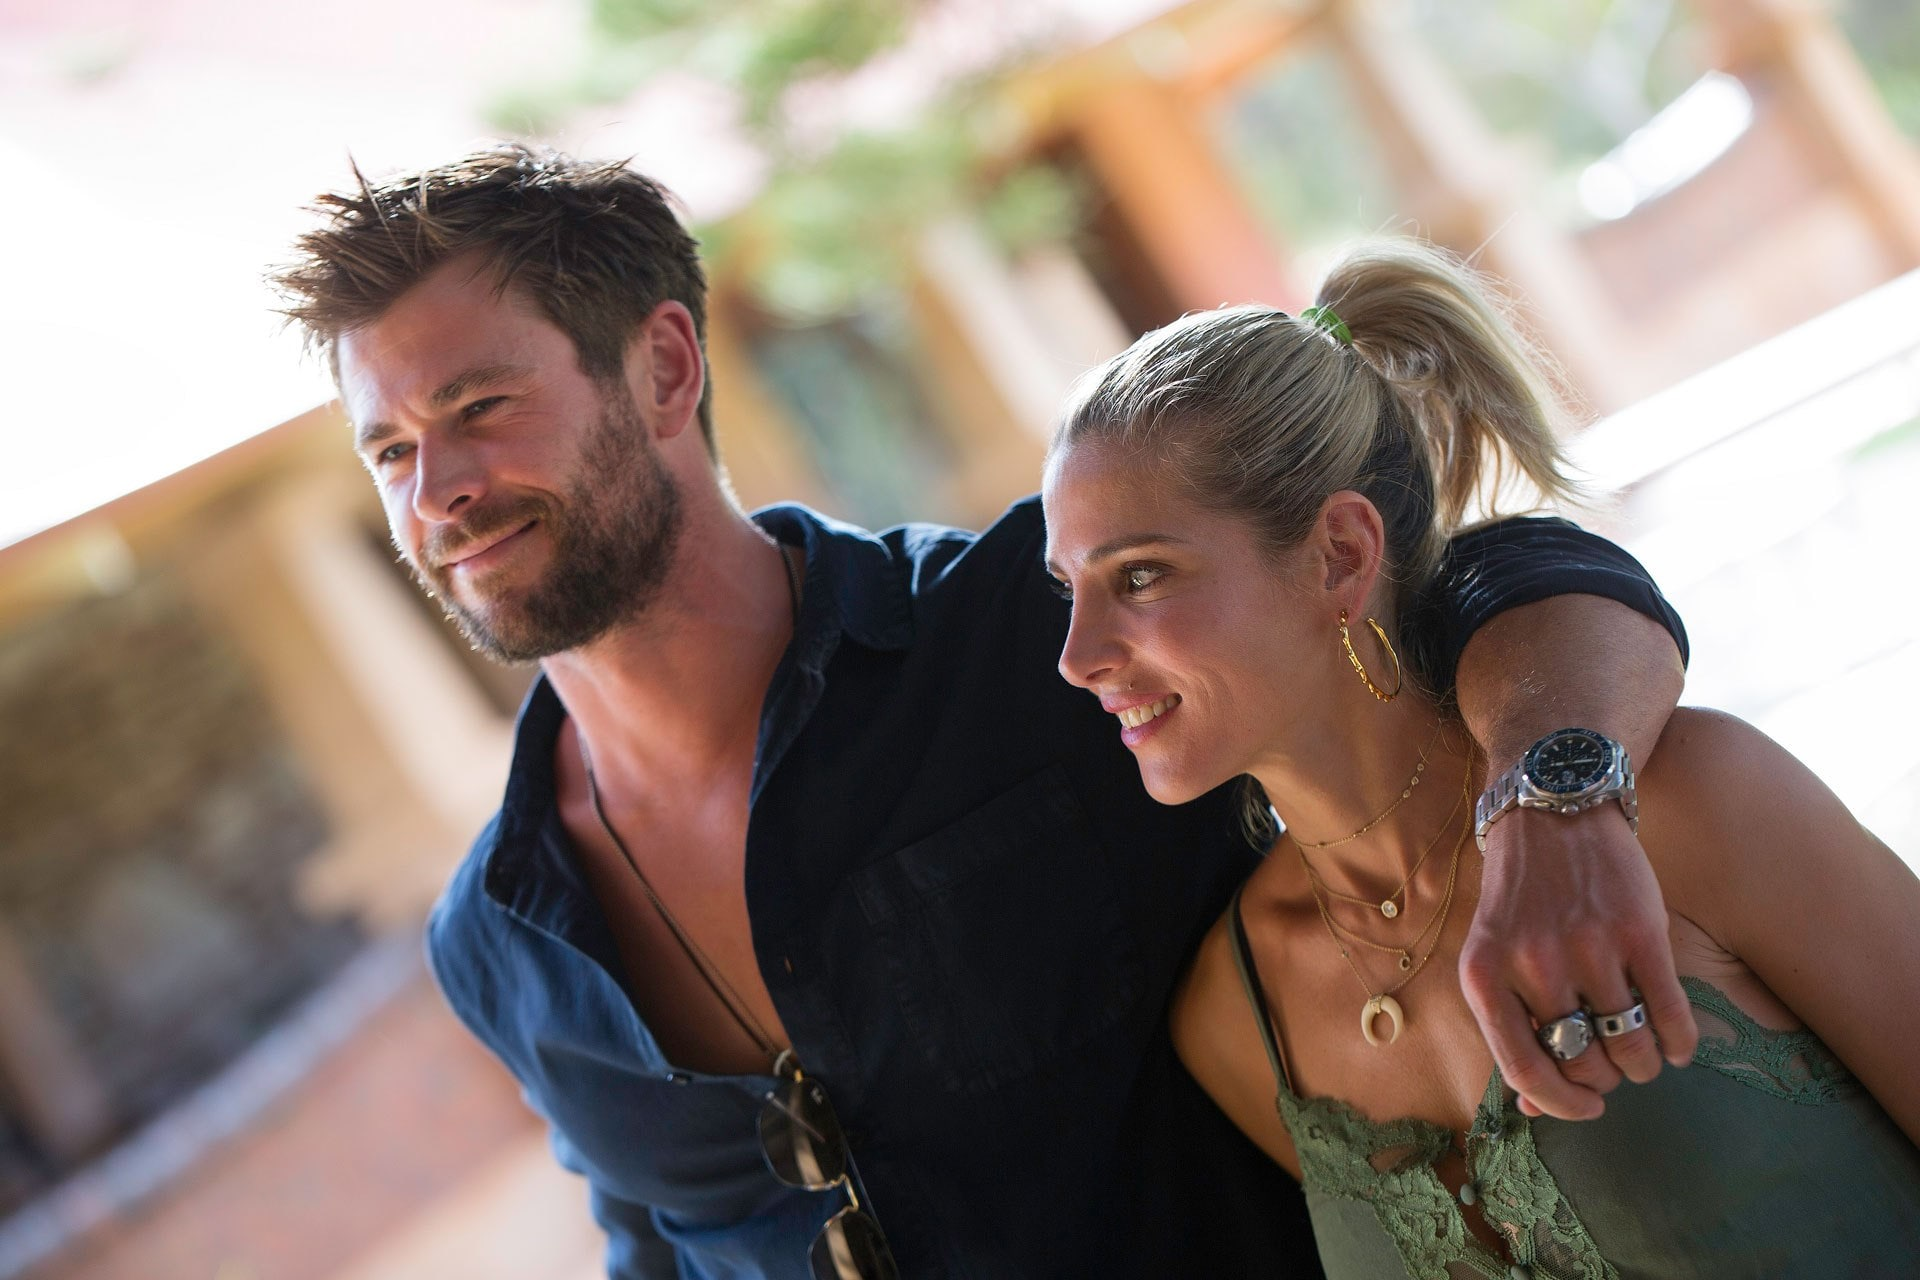 Chris Hemsworth and Elsa Pataky at the Jacob's Creek estate in the Barossa Valley